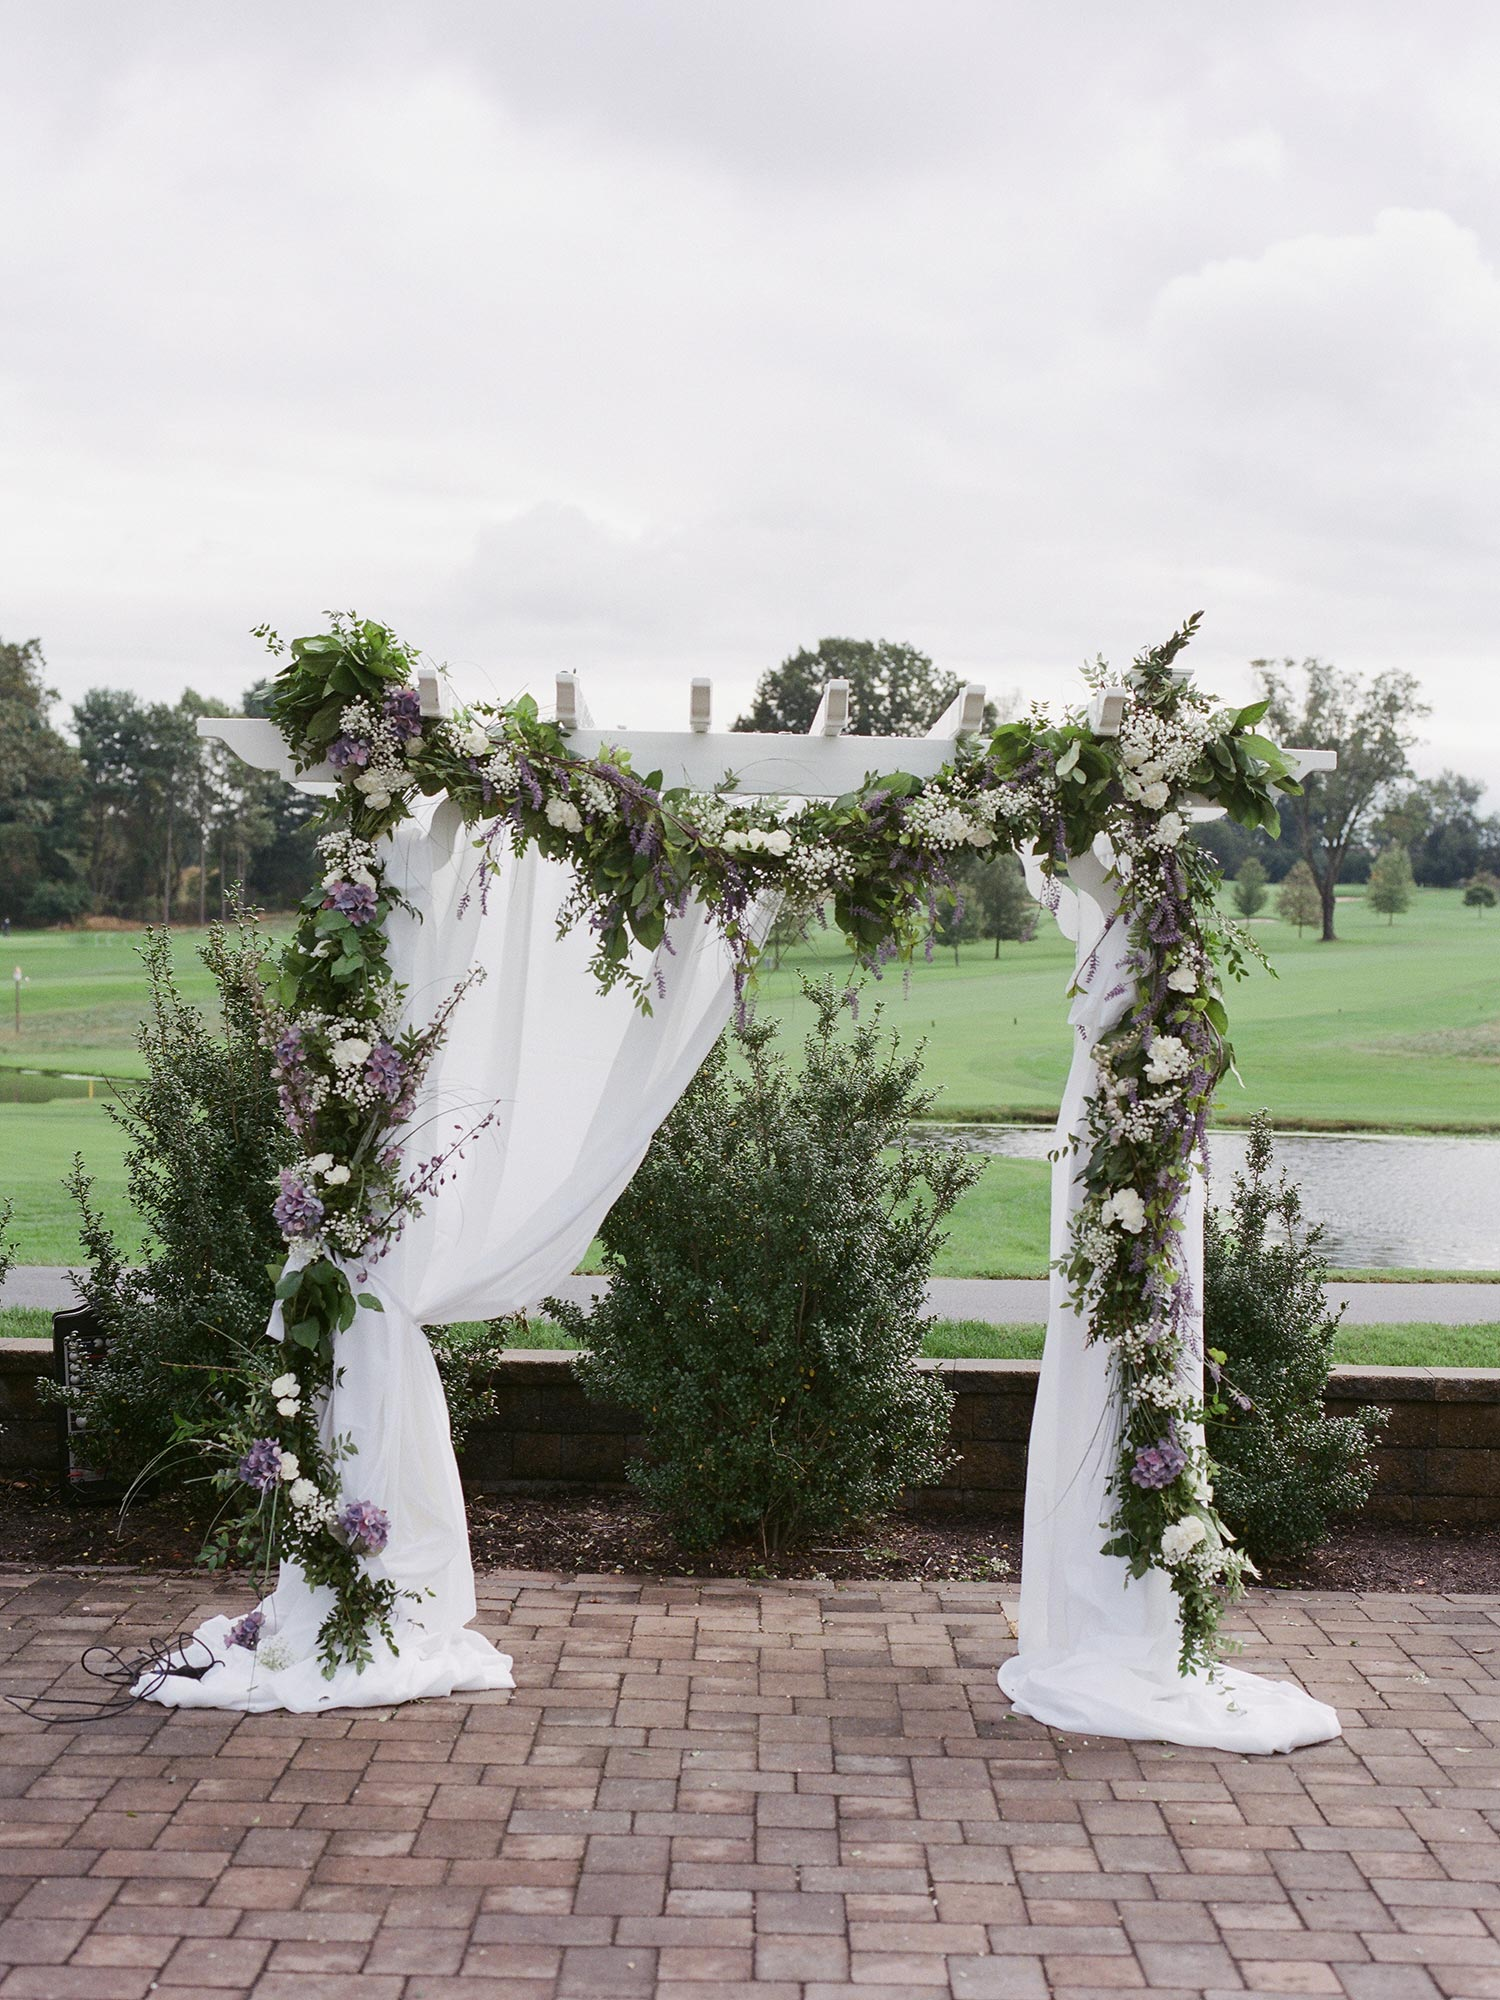 Chic Queer Wedding in West Chester Pennsylvania showing floral wedding arbor Judson Rappaport Photography